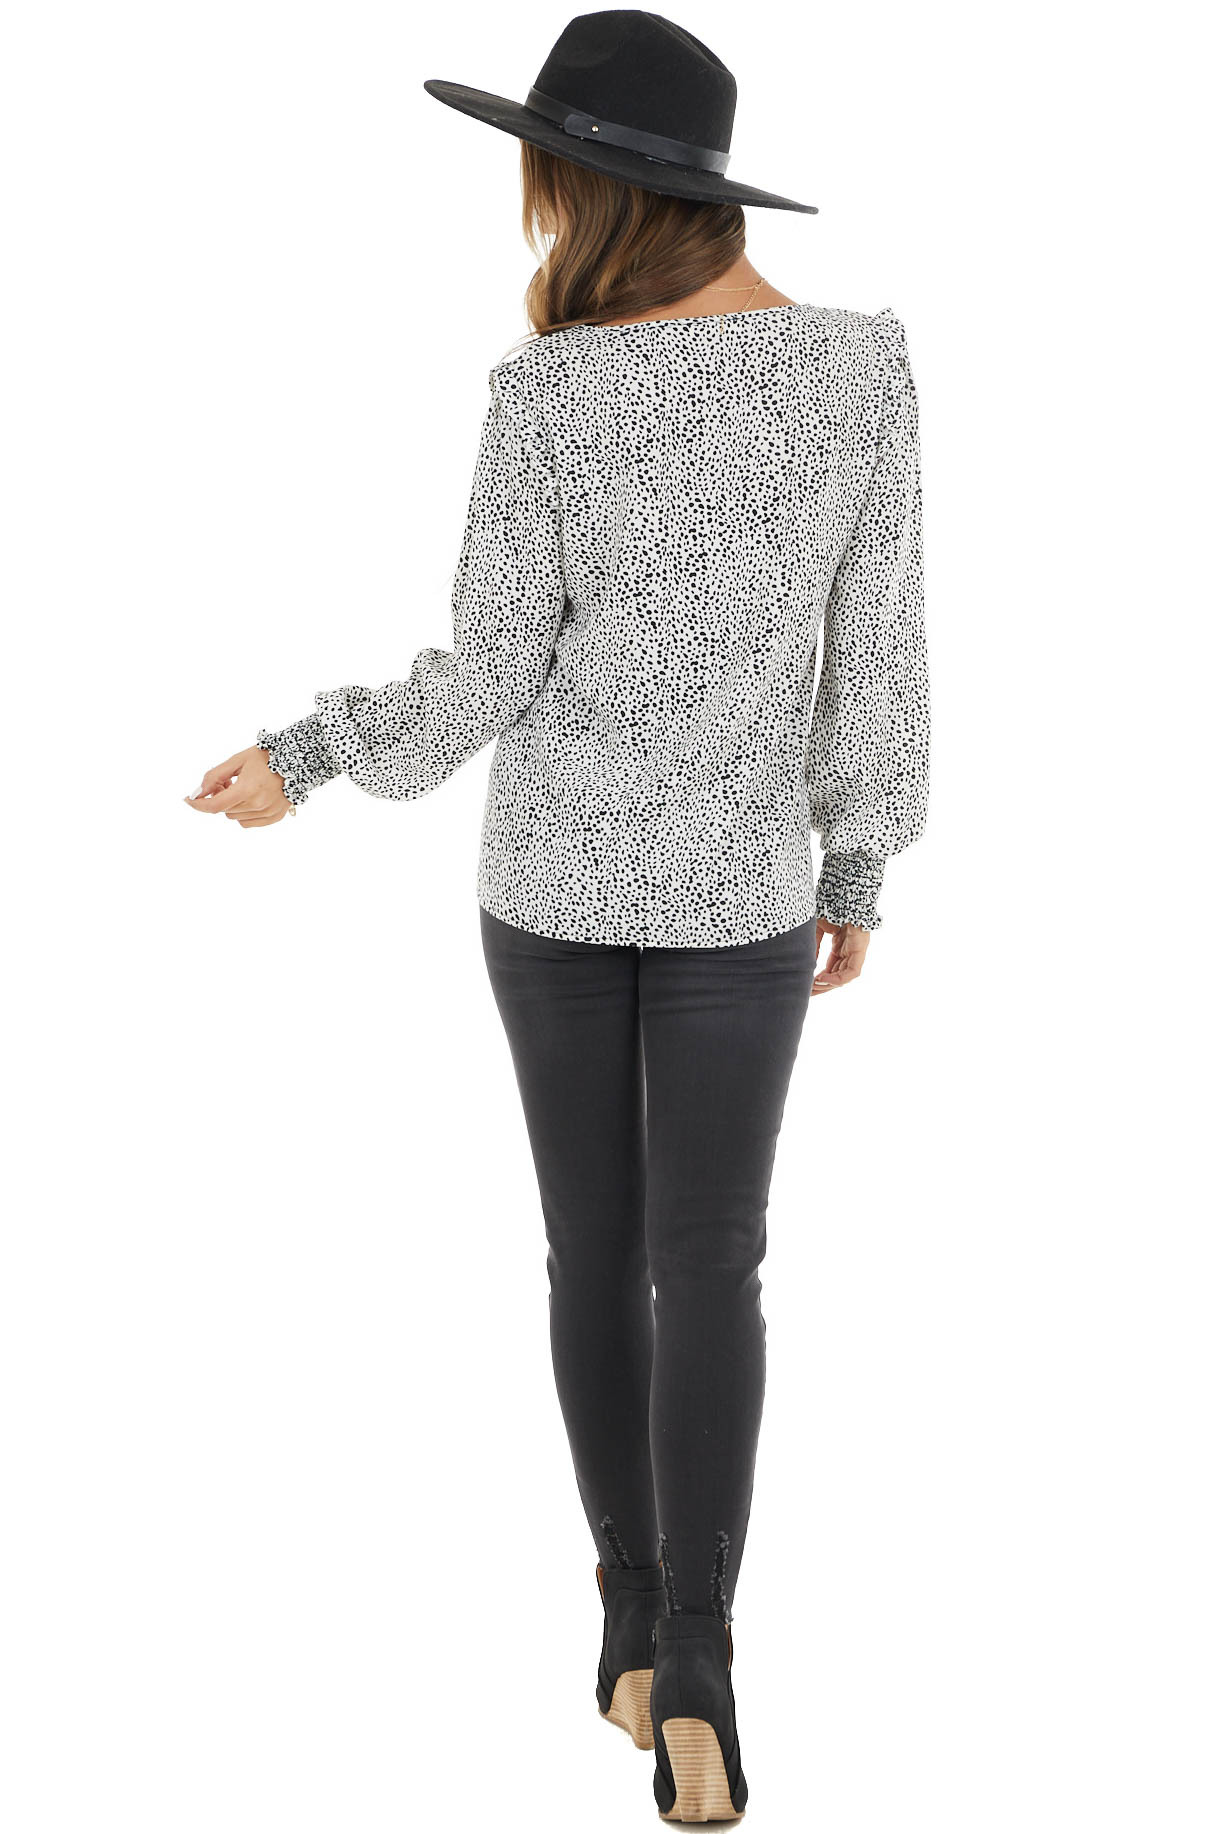 Off White Cheetah Print Woven Top with Detailed Shoulder